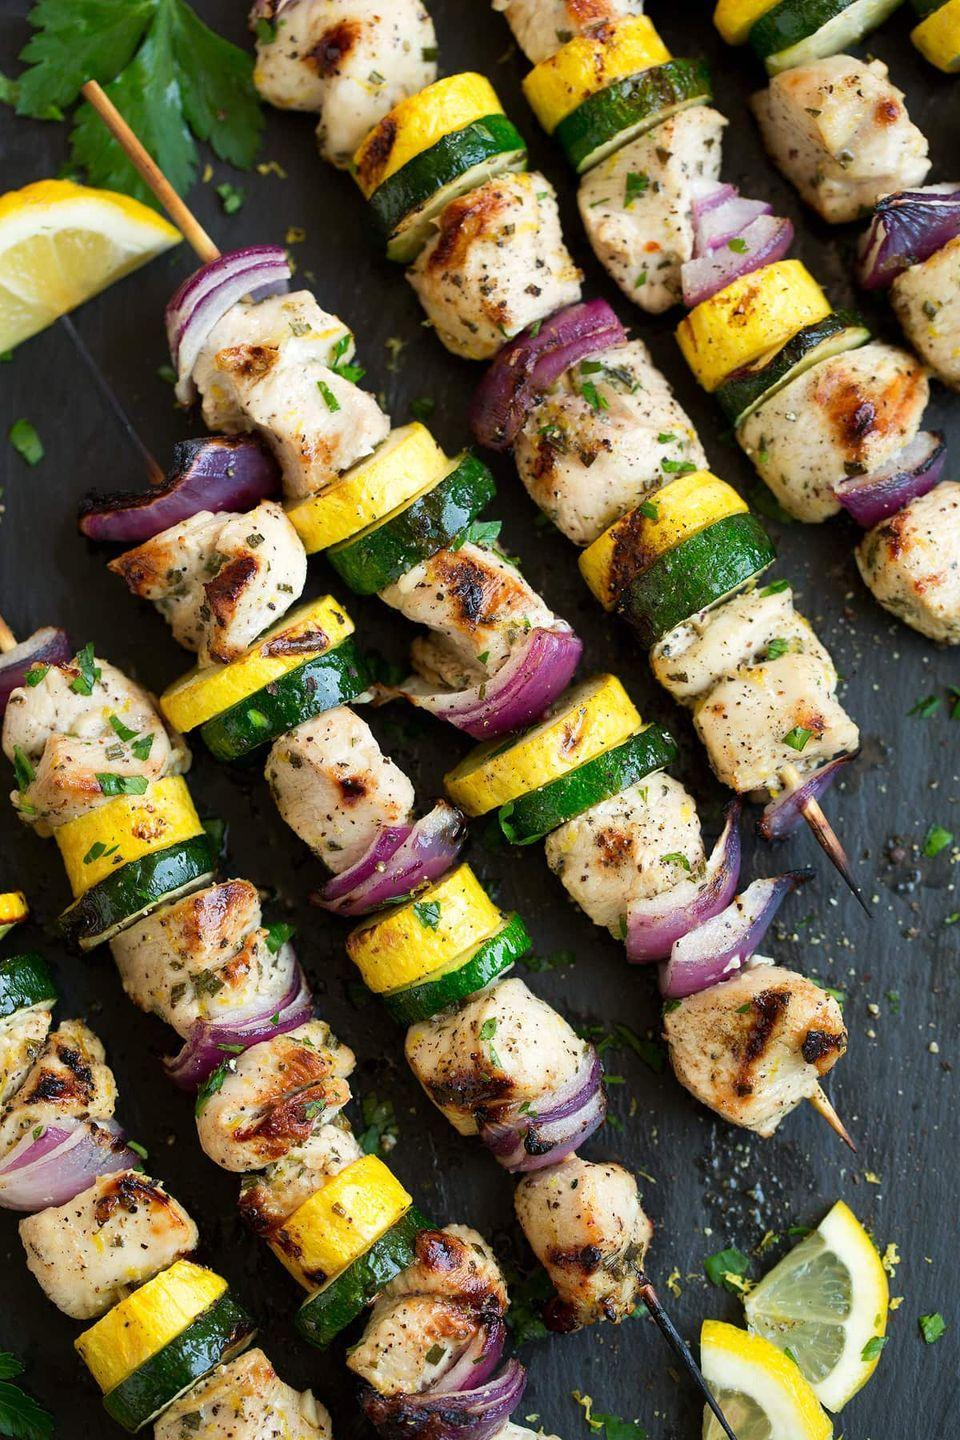 "<p>These stacked kebabs are grilled to charred perfection.</p><p><strong>Get the recipe at <a href=""https://www.cookingclassy.com/lemon-pepper-chicken-kebabs/"" rel=""nofollow noopener"" target=""_blank"" data-ylk=""slk:Cooking Classy"" class=""link rapid-noclick-resp"">Cooking Classy</a>.</strong></p>"